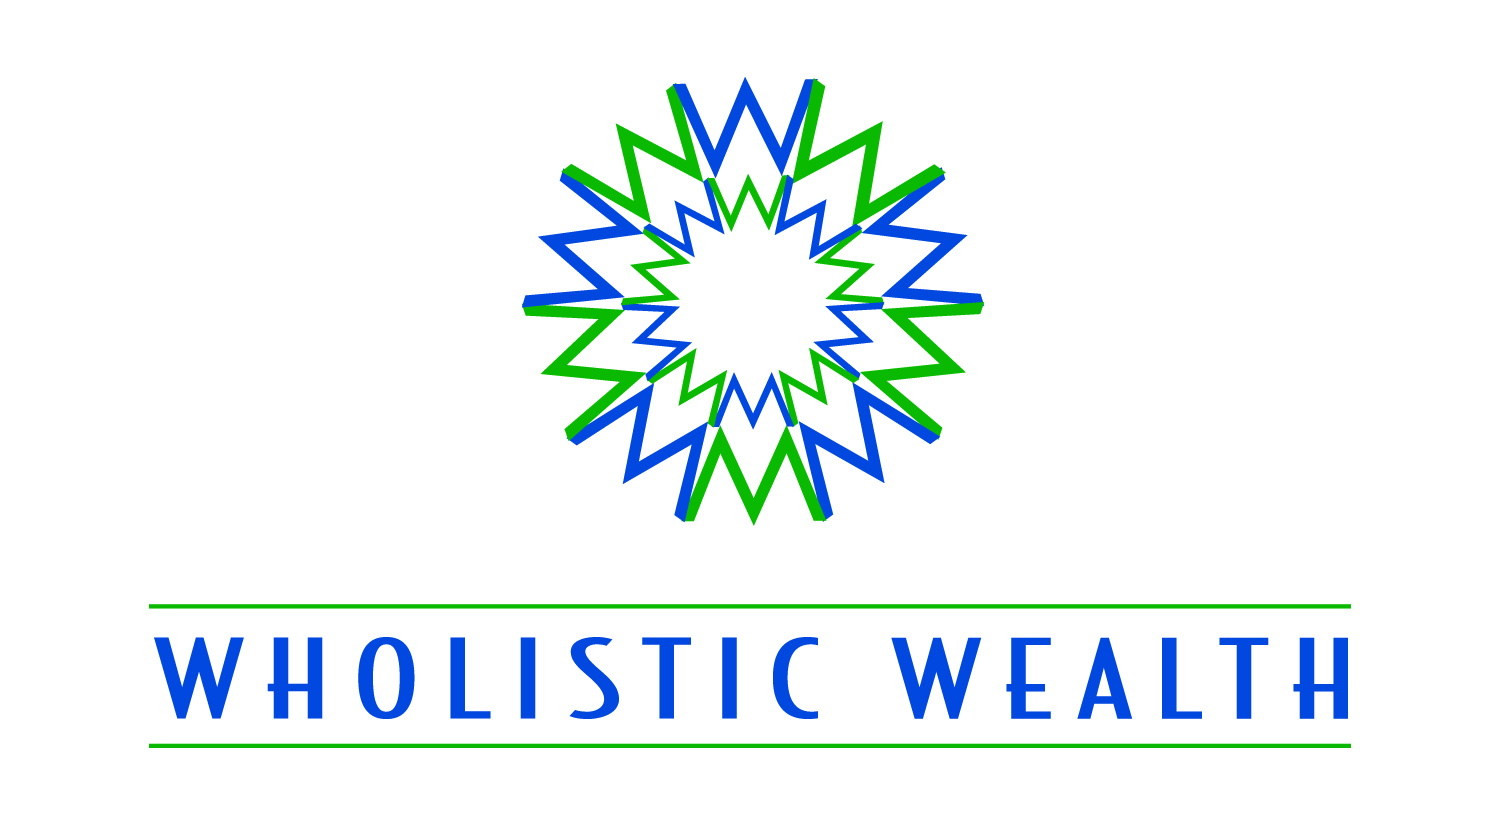 Wholistic Wealth, LLC